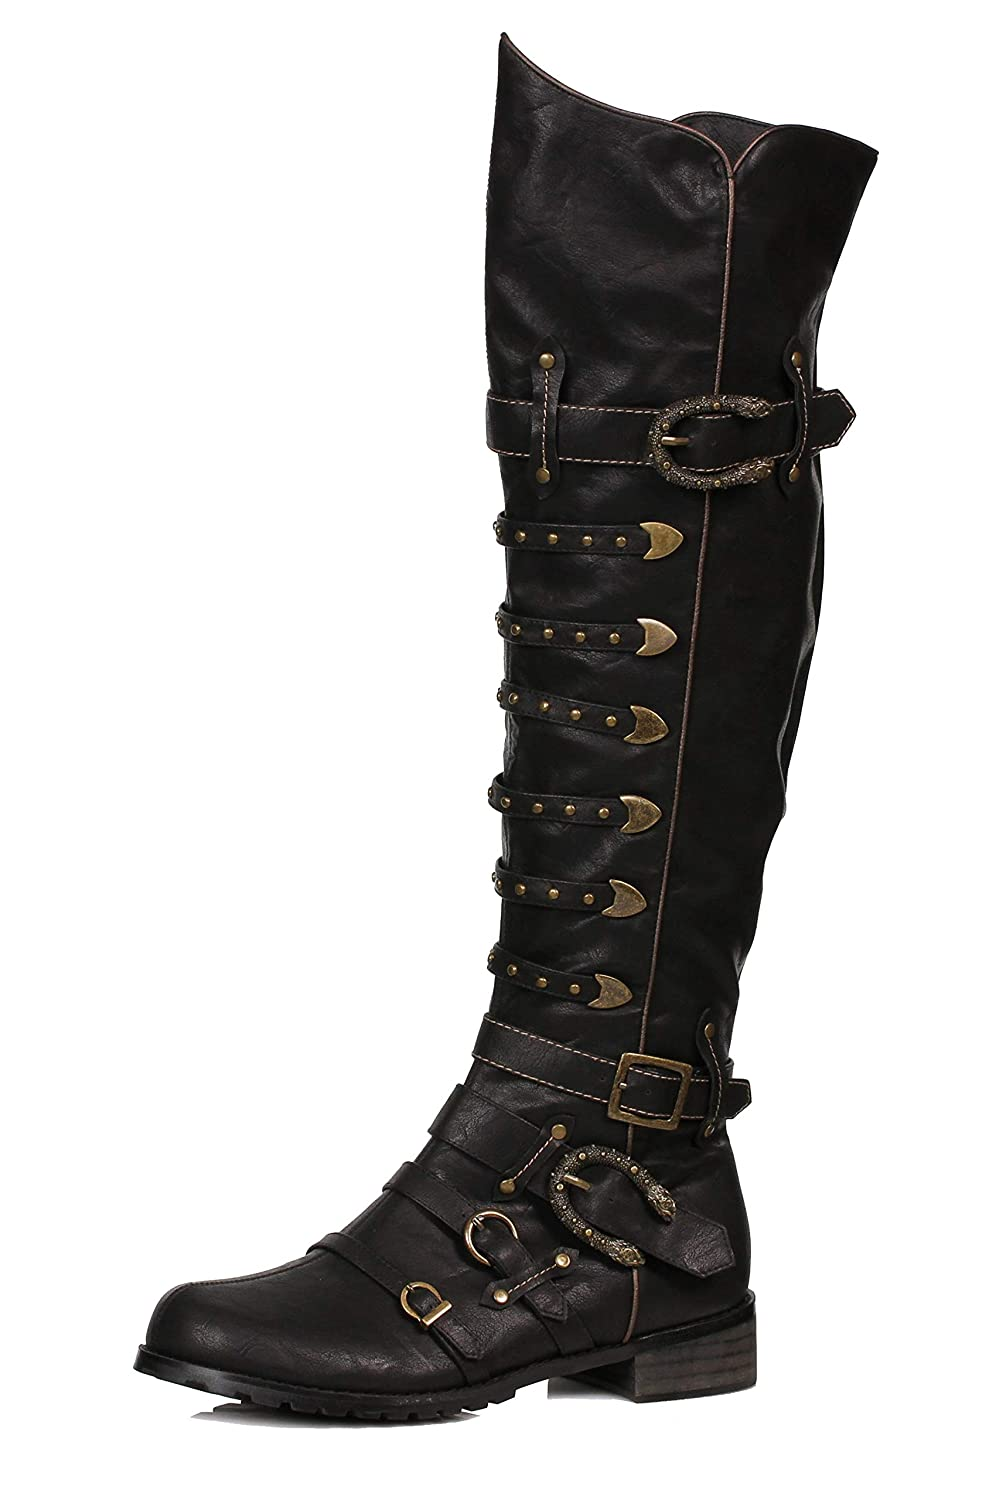 Steampunk Boots & Shoes, Heels & Flats Ellie Shoes Mens 158-Wilbur Steampunk Costume Boots $124.00 AT vintagedancer.com